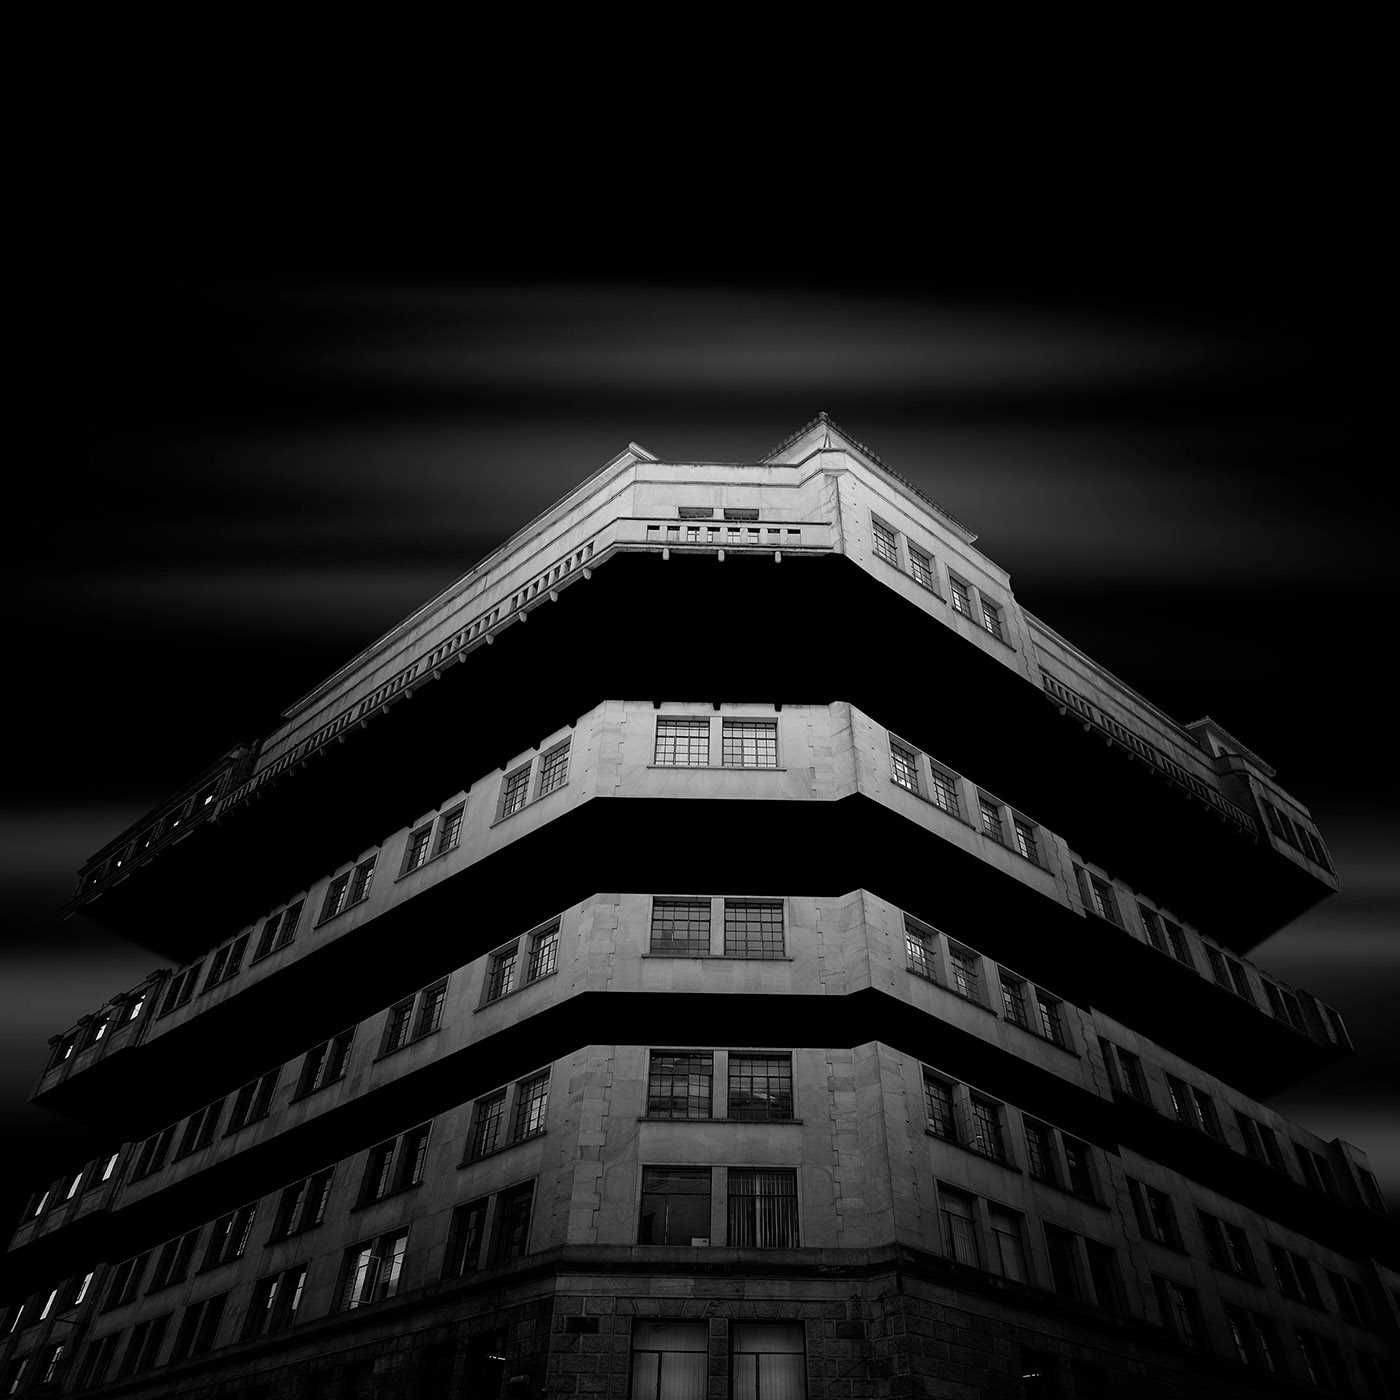 Grvty Incredible Black And White Architecture Photography By Daniel Garay Arango Inspiration Photography